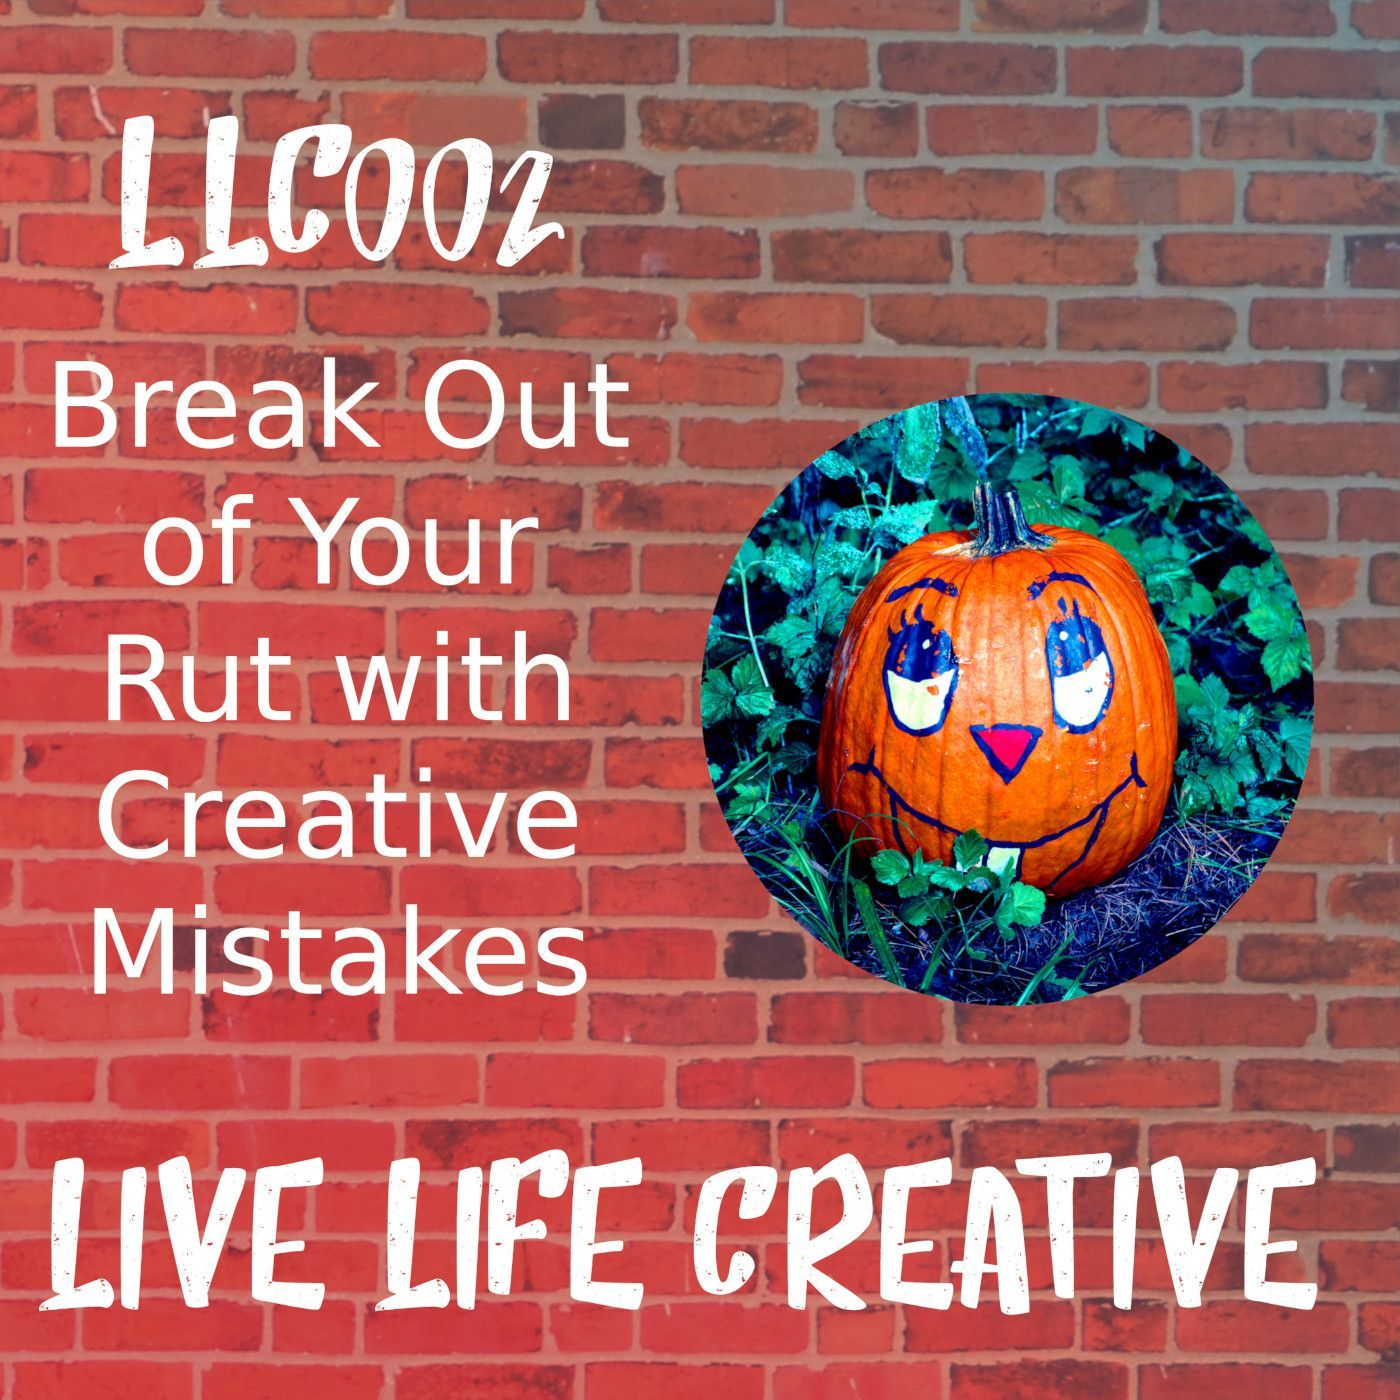 Break Out of Your Rut with Creative Mistakes